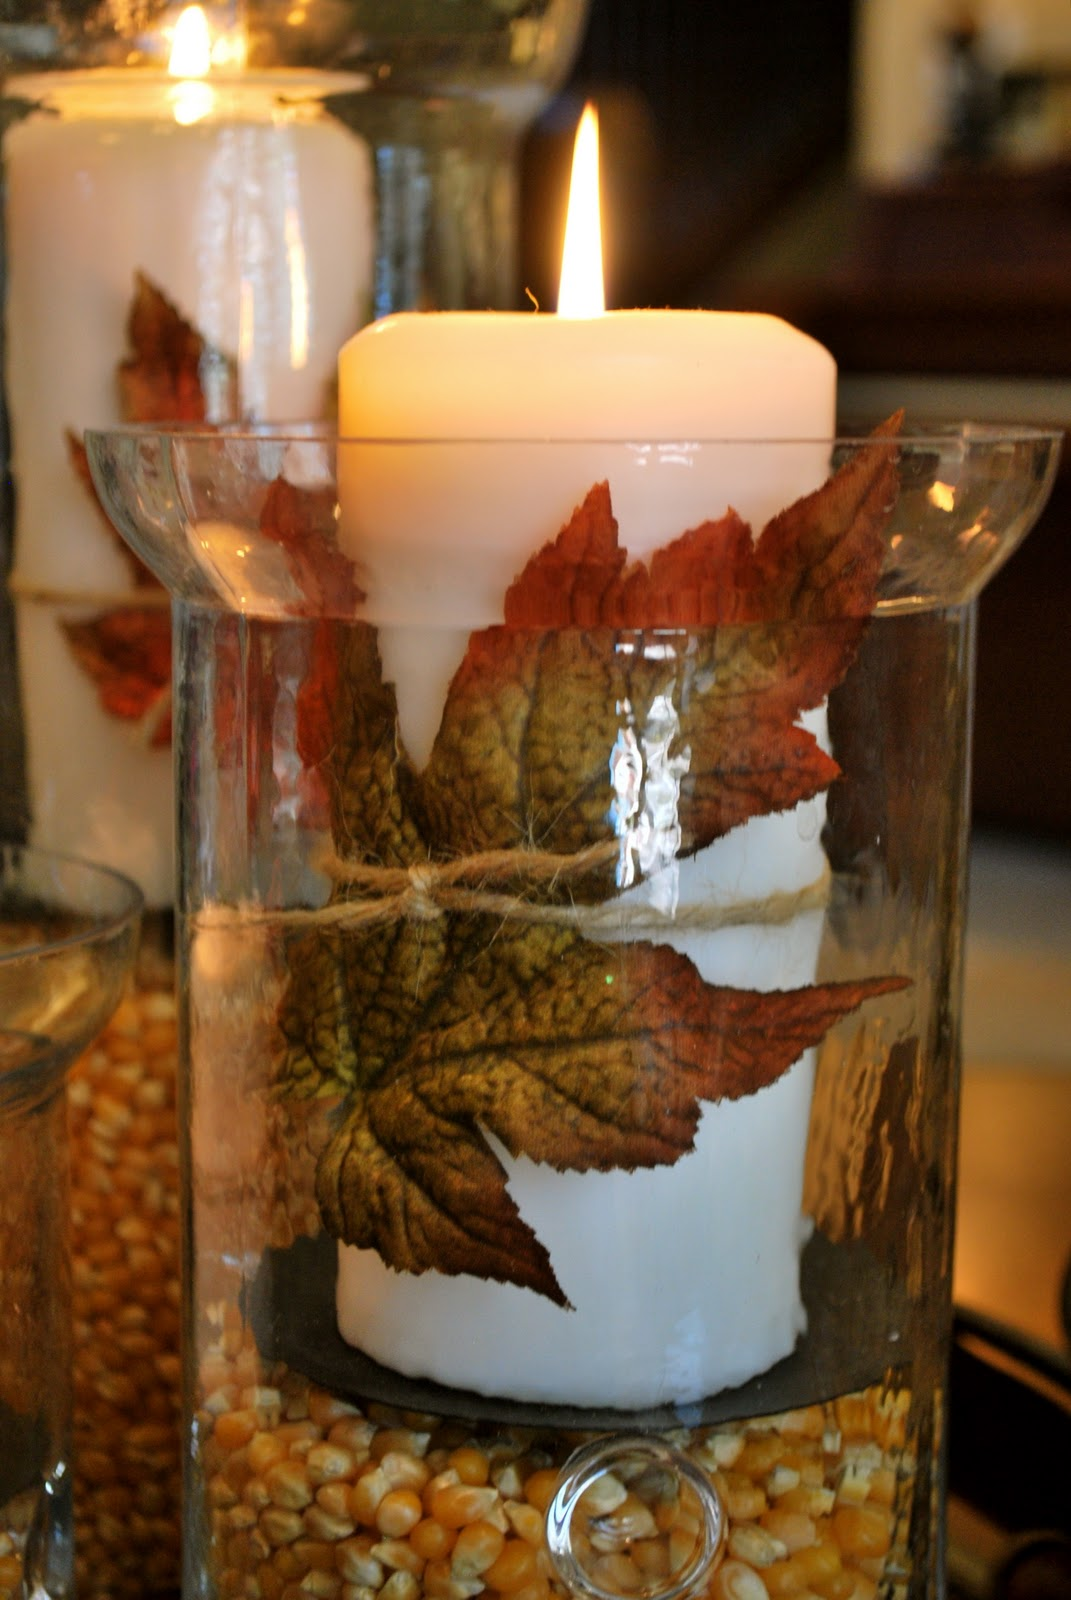 Thanksgivingfall decorations hurricane vases amanda jane brown these candles i use over and over for different seasonal displays in these hurricane vases reviewsmspy